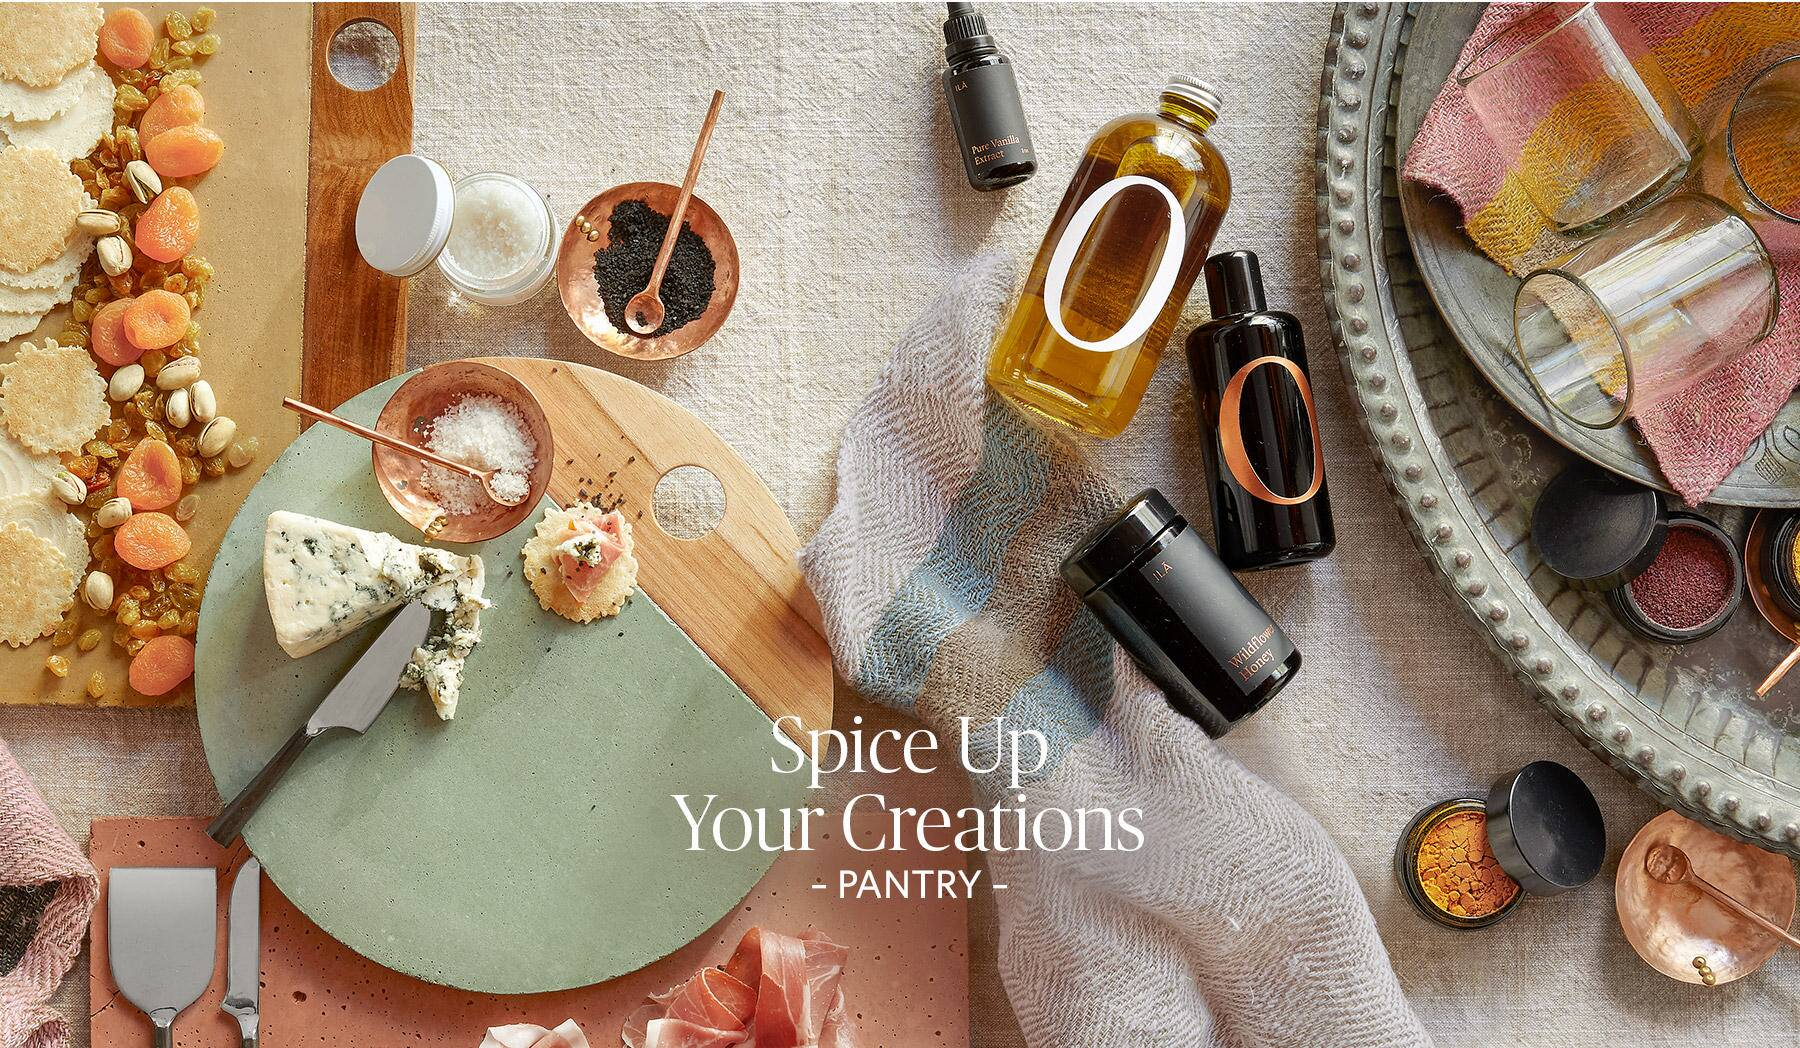 Spice up your creations